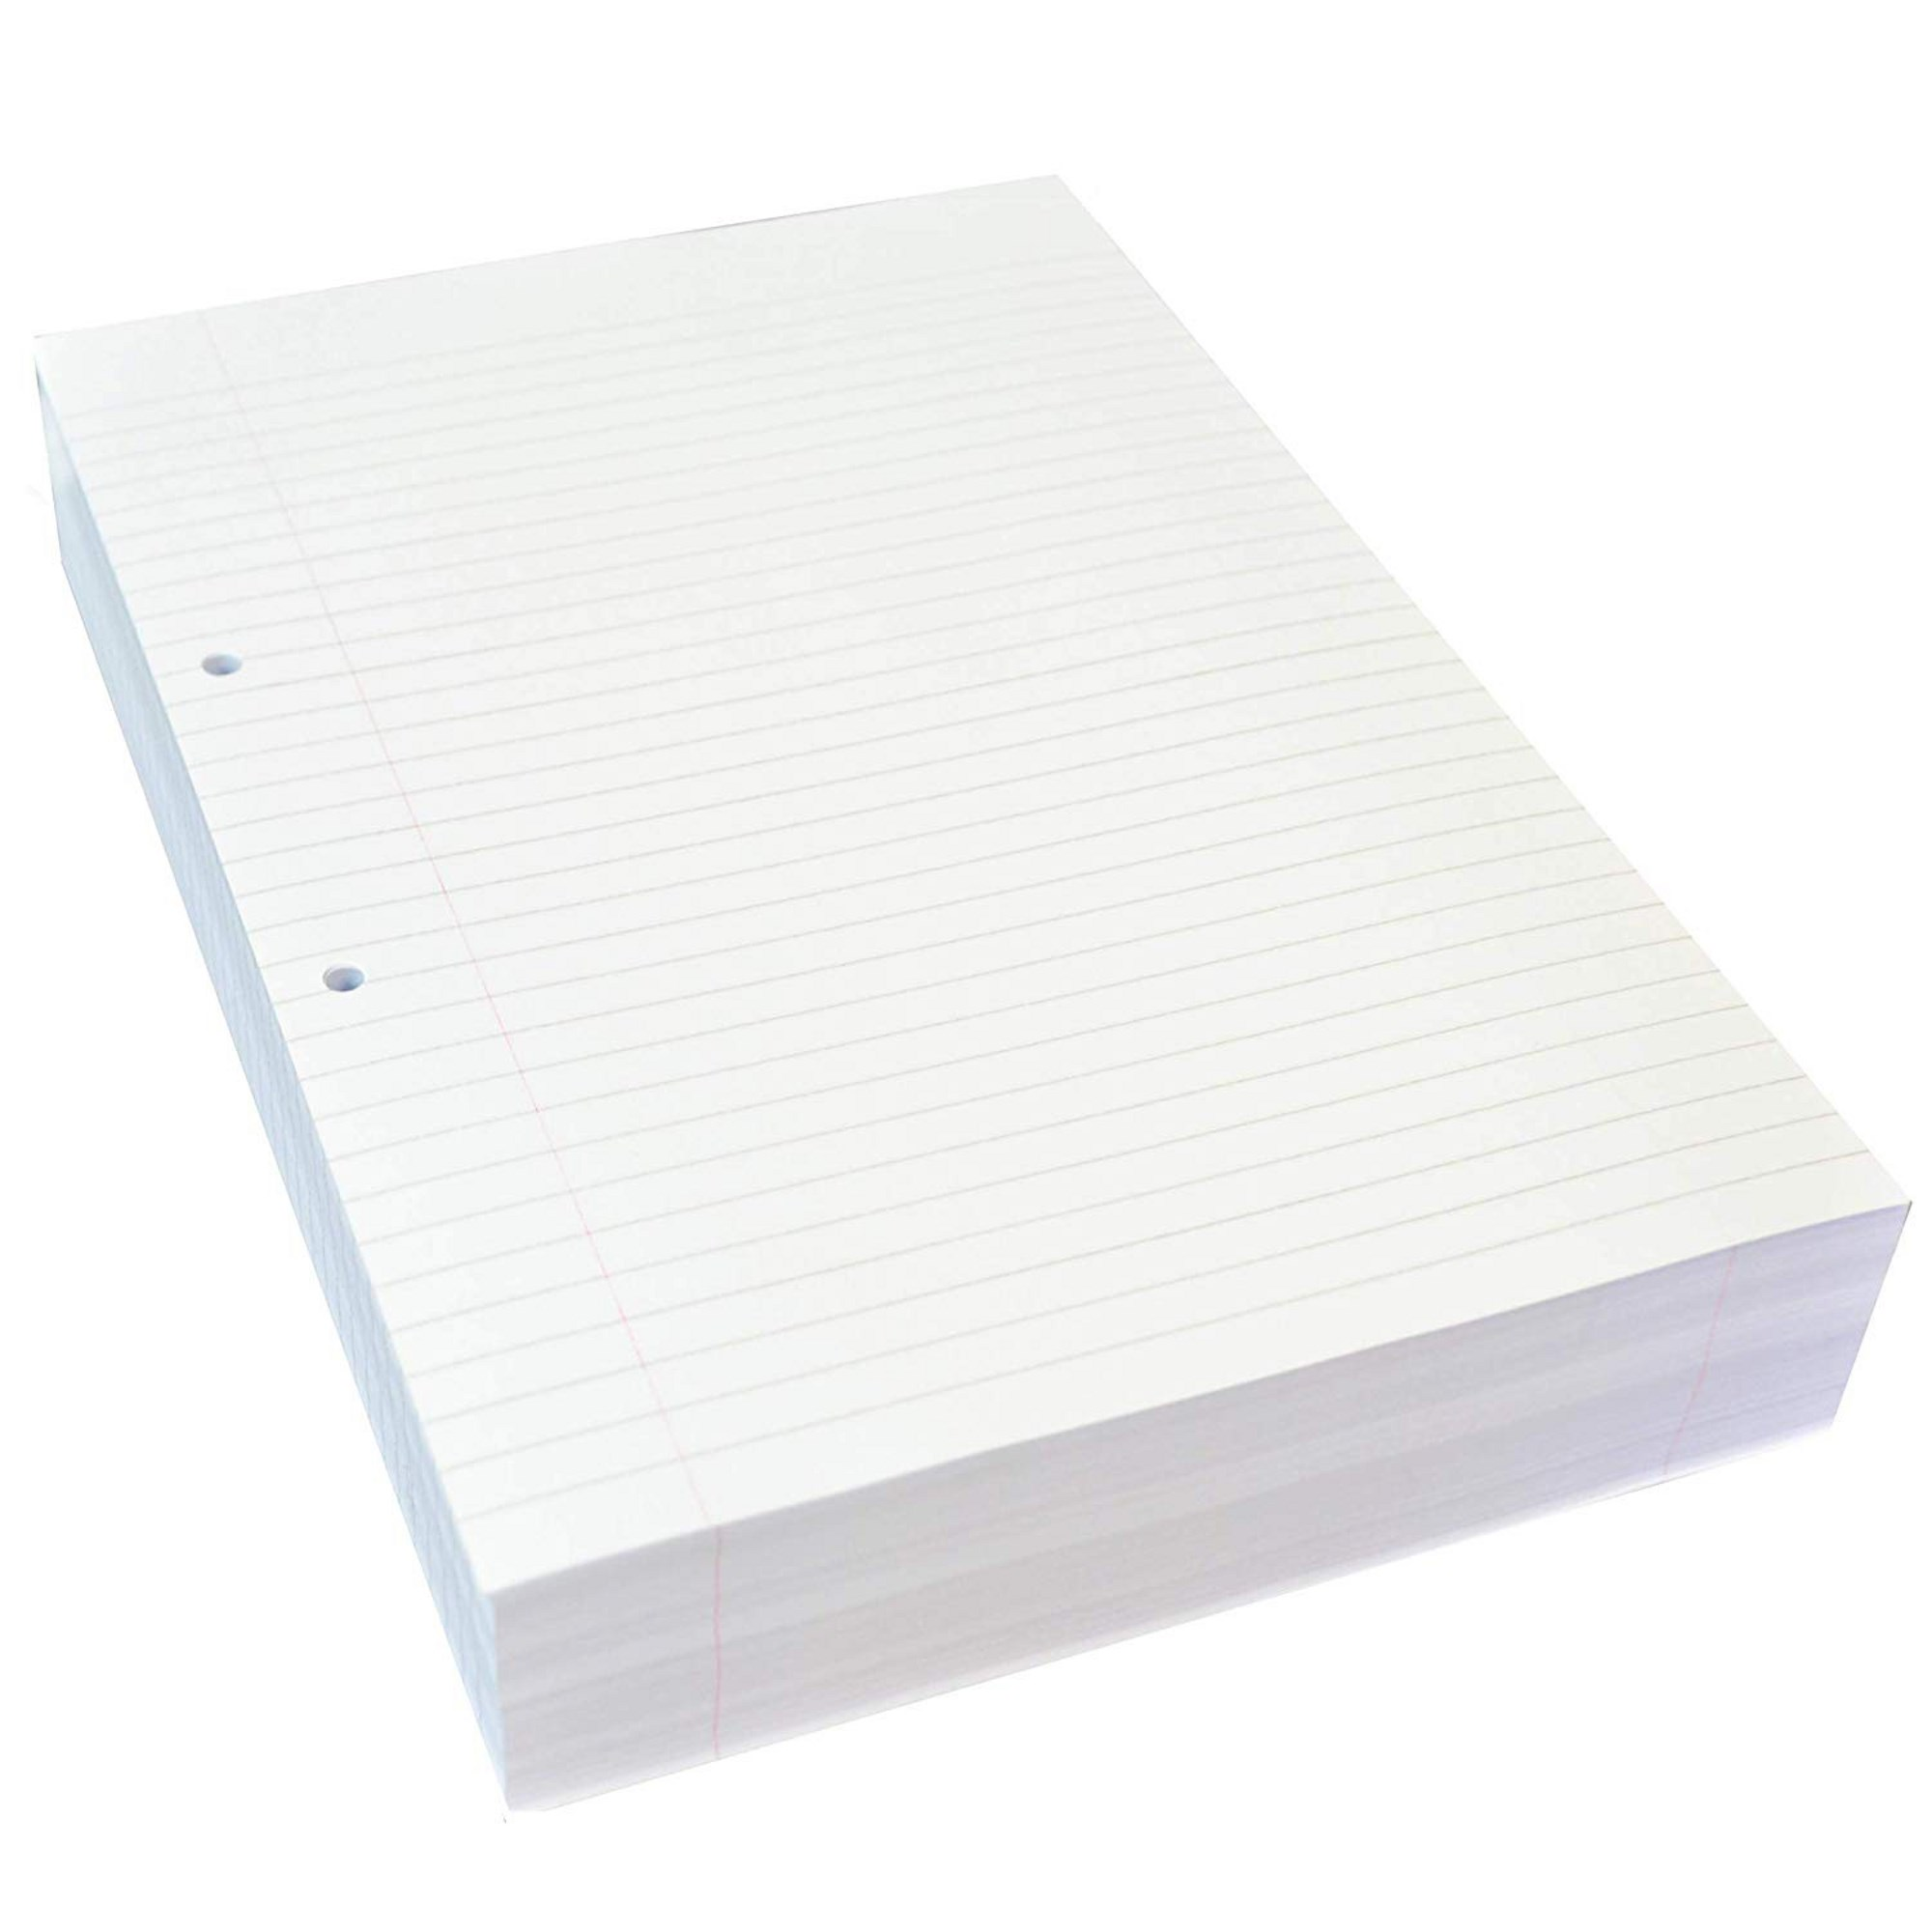 A4 Exercise Paper 8mm Margin 90gsm (100 Sheets)